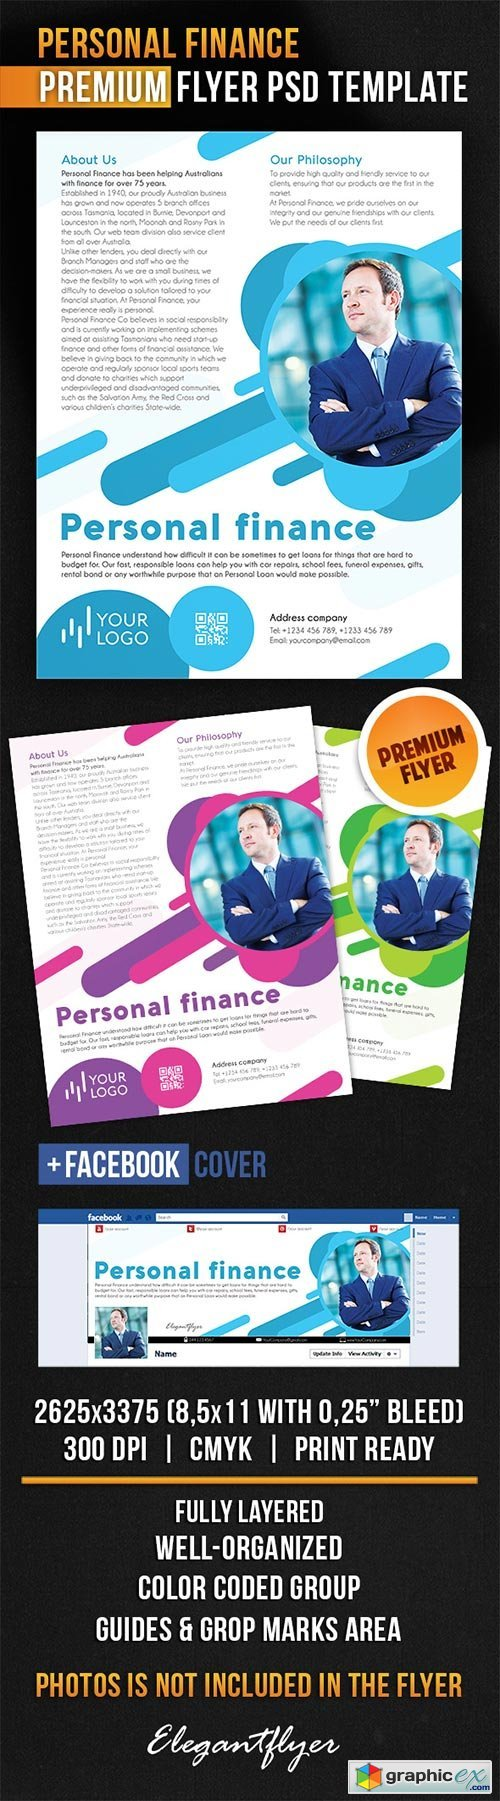 Personal Finance Flyer PSD Template + Facebook Cover